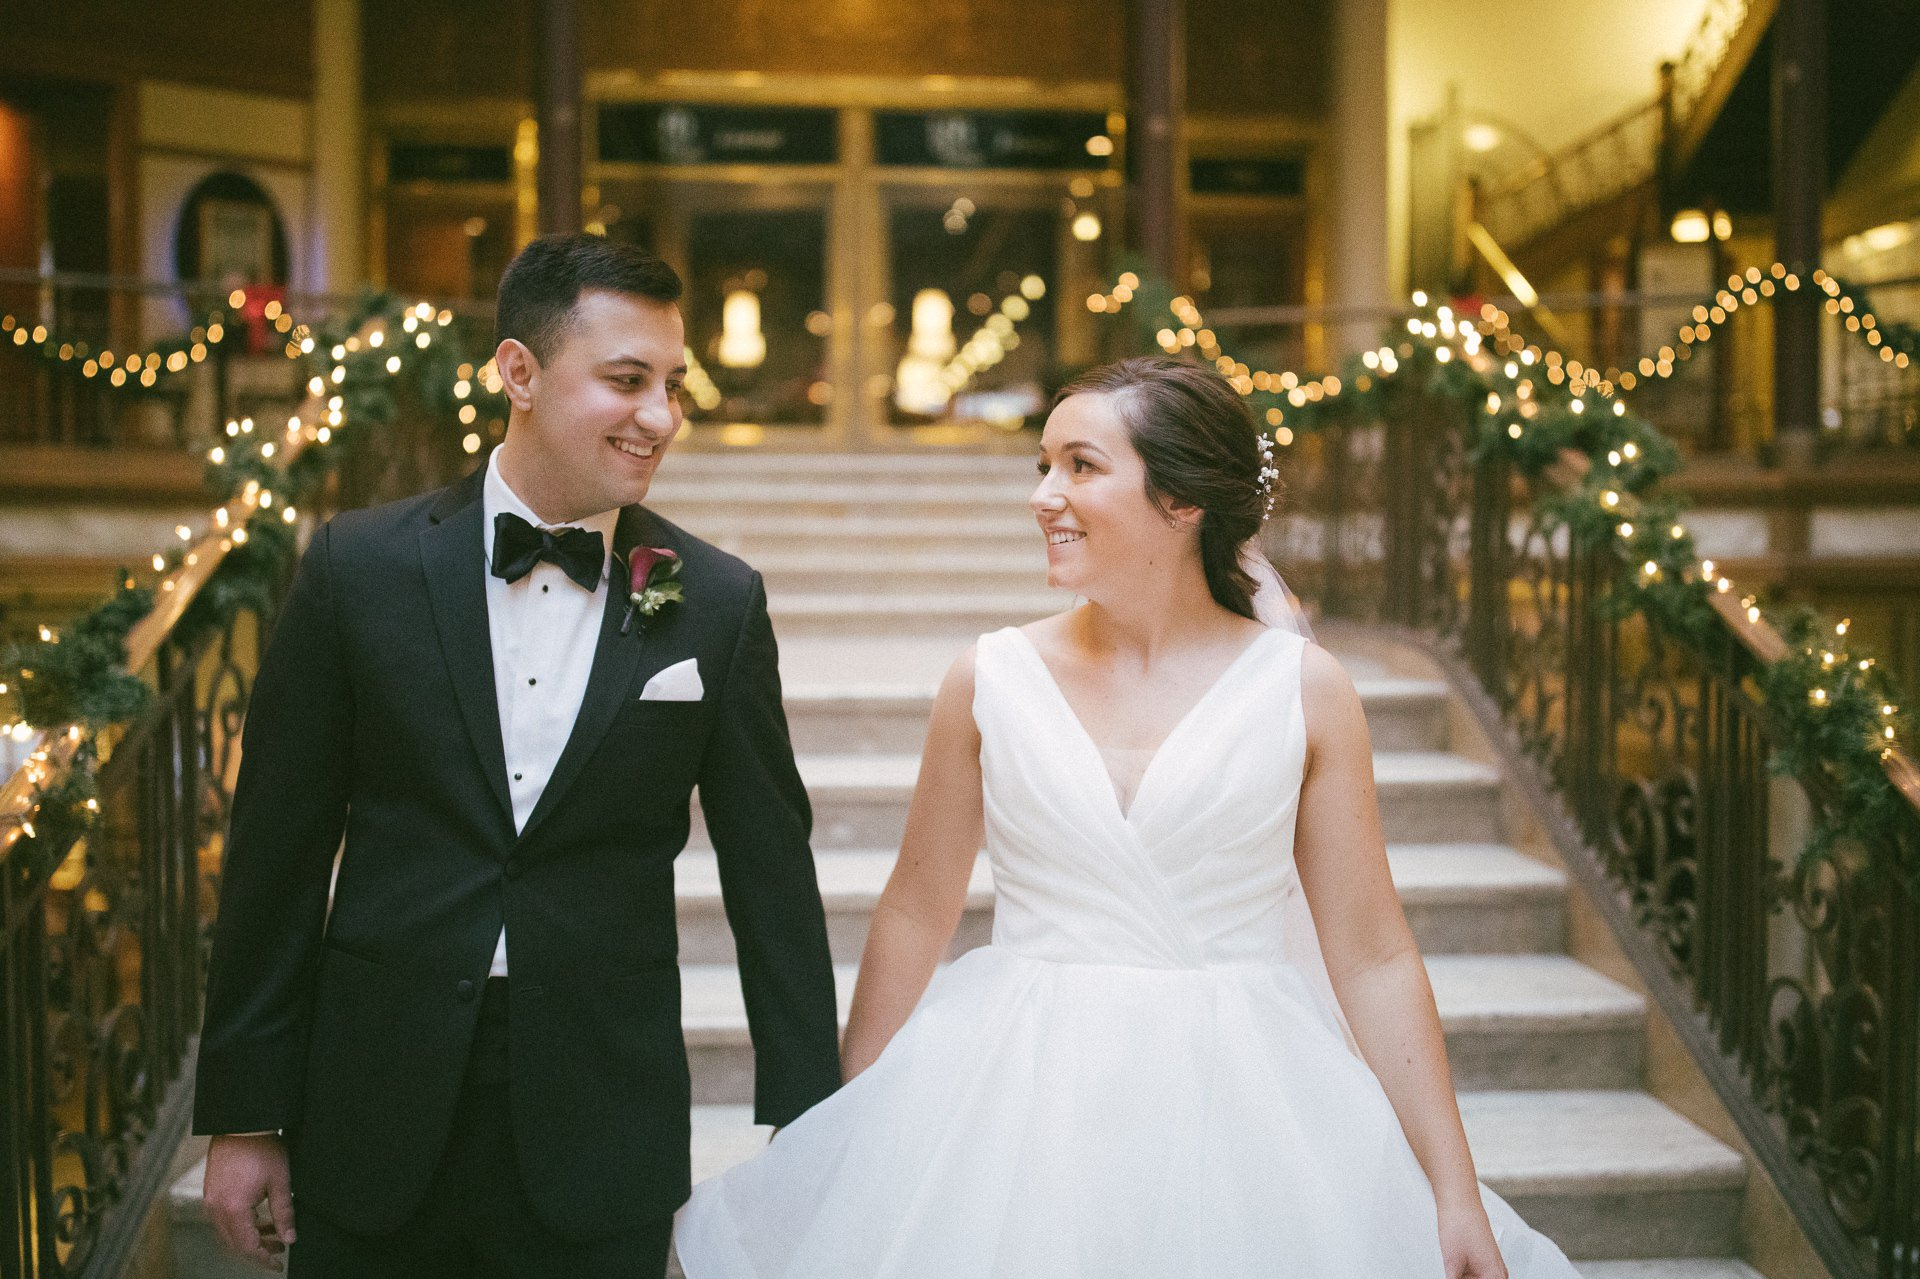 Hyatt Old Arcade Wedding Photographer in Cleveland 1 45.jpg